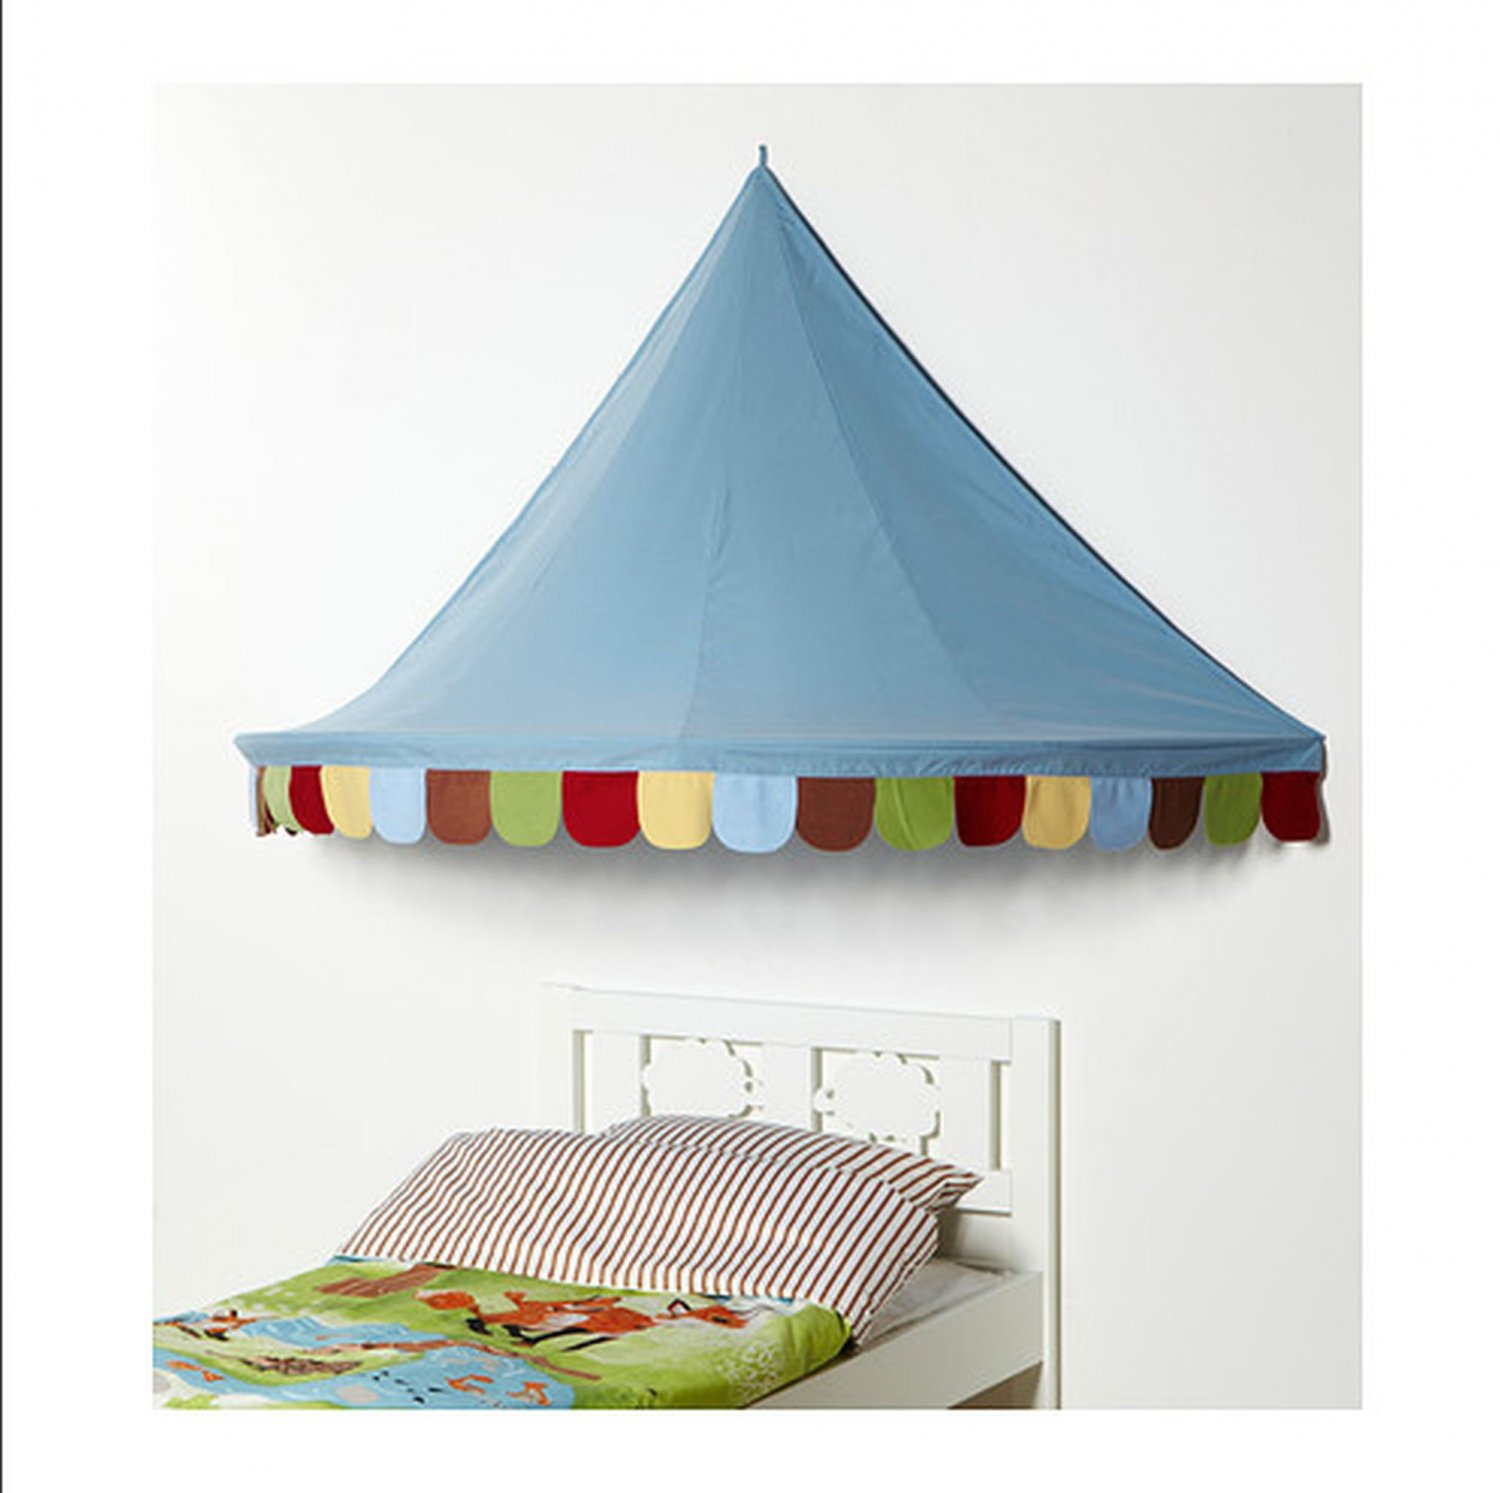 ikea child 39 s mysig bed tent canopy toy blue xmas girl boy. Black Bedroom Furniture Sets. Home Design Ideas